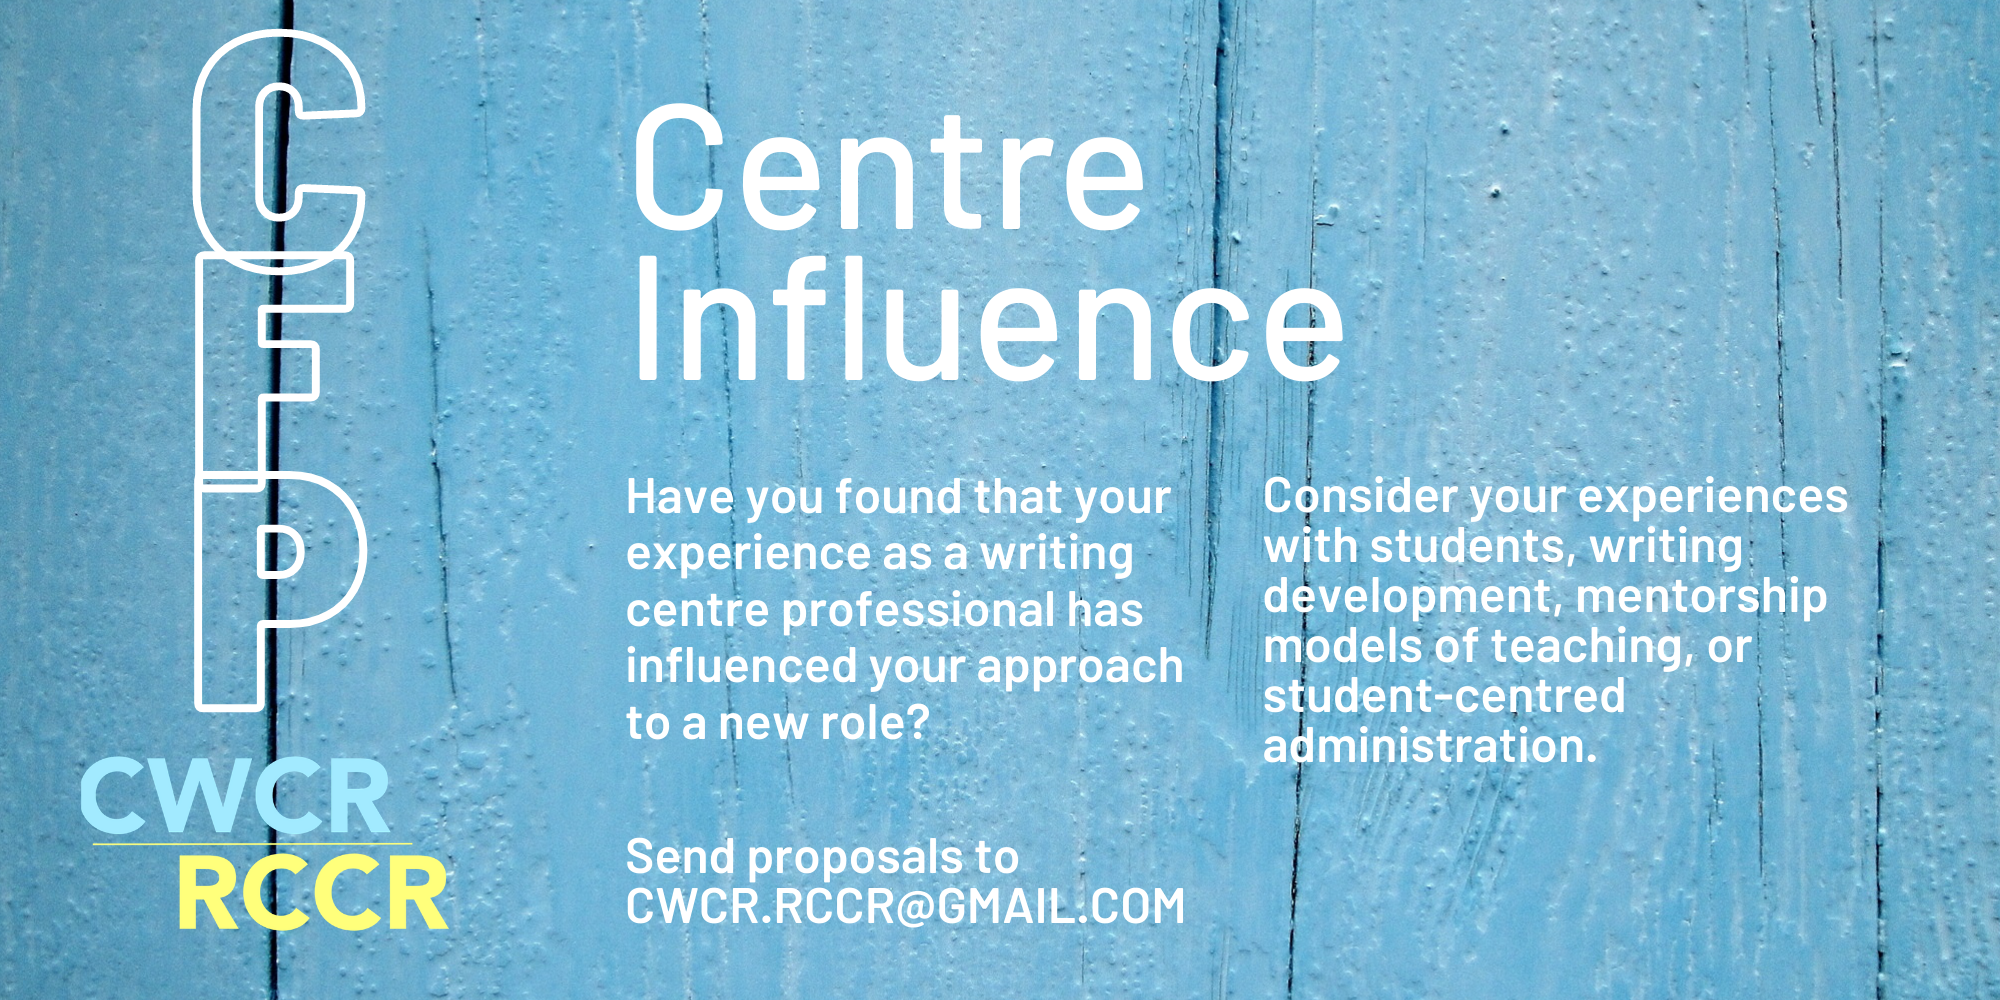 CFP Centre Influence